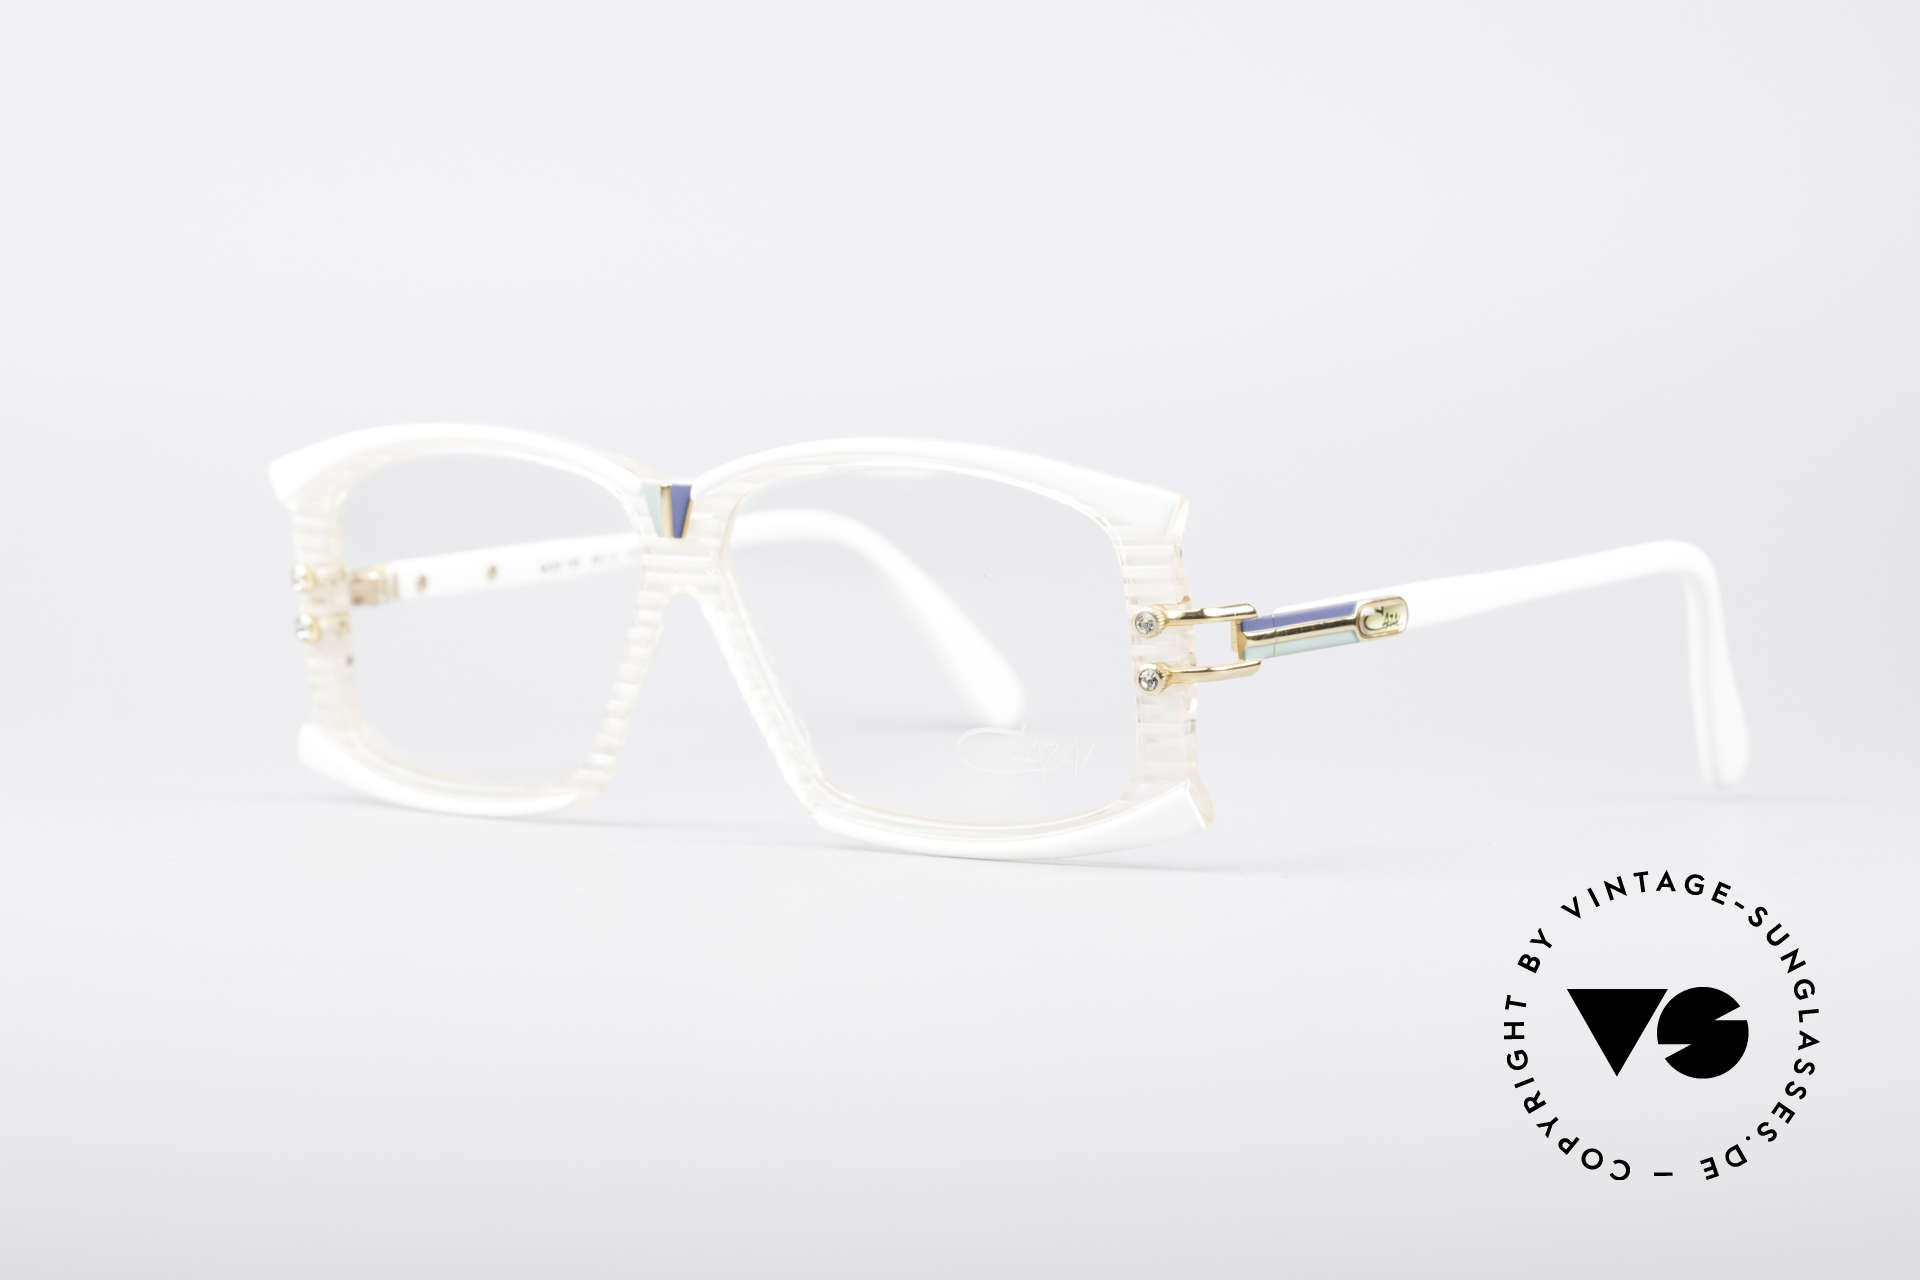 Cazal 195 80's Hip Hop Glasses, with little color accents in deep-blue / turquoise / gold, Made for Women